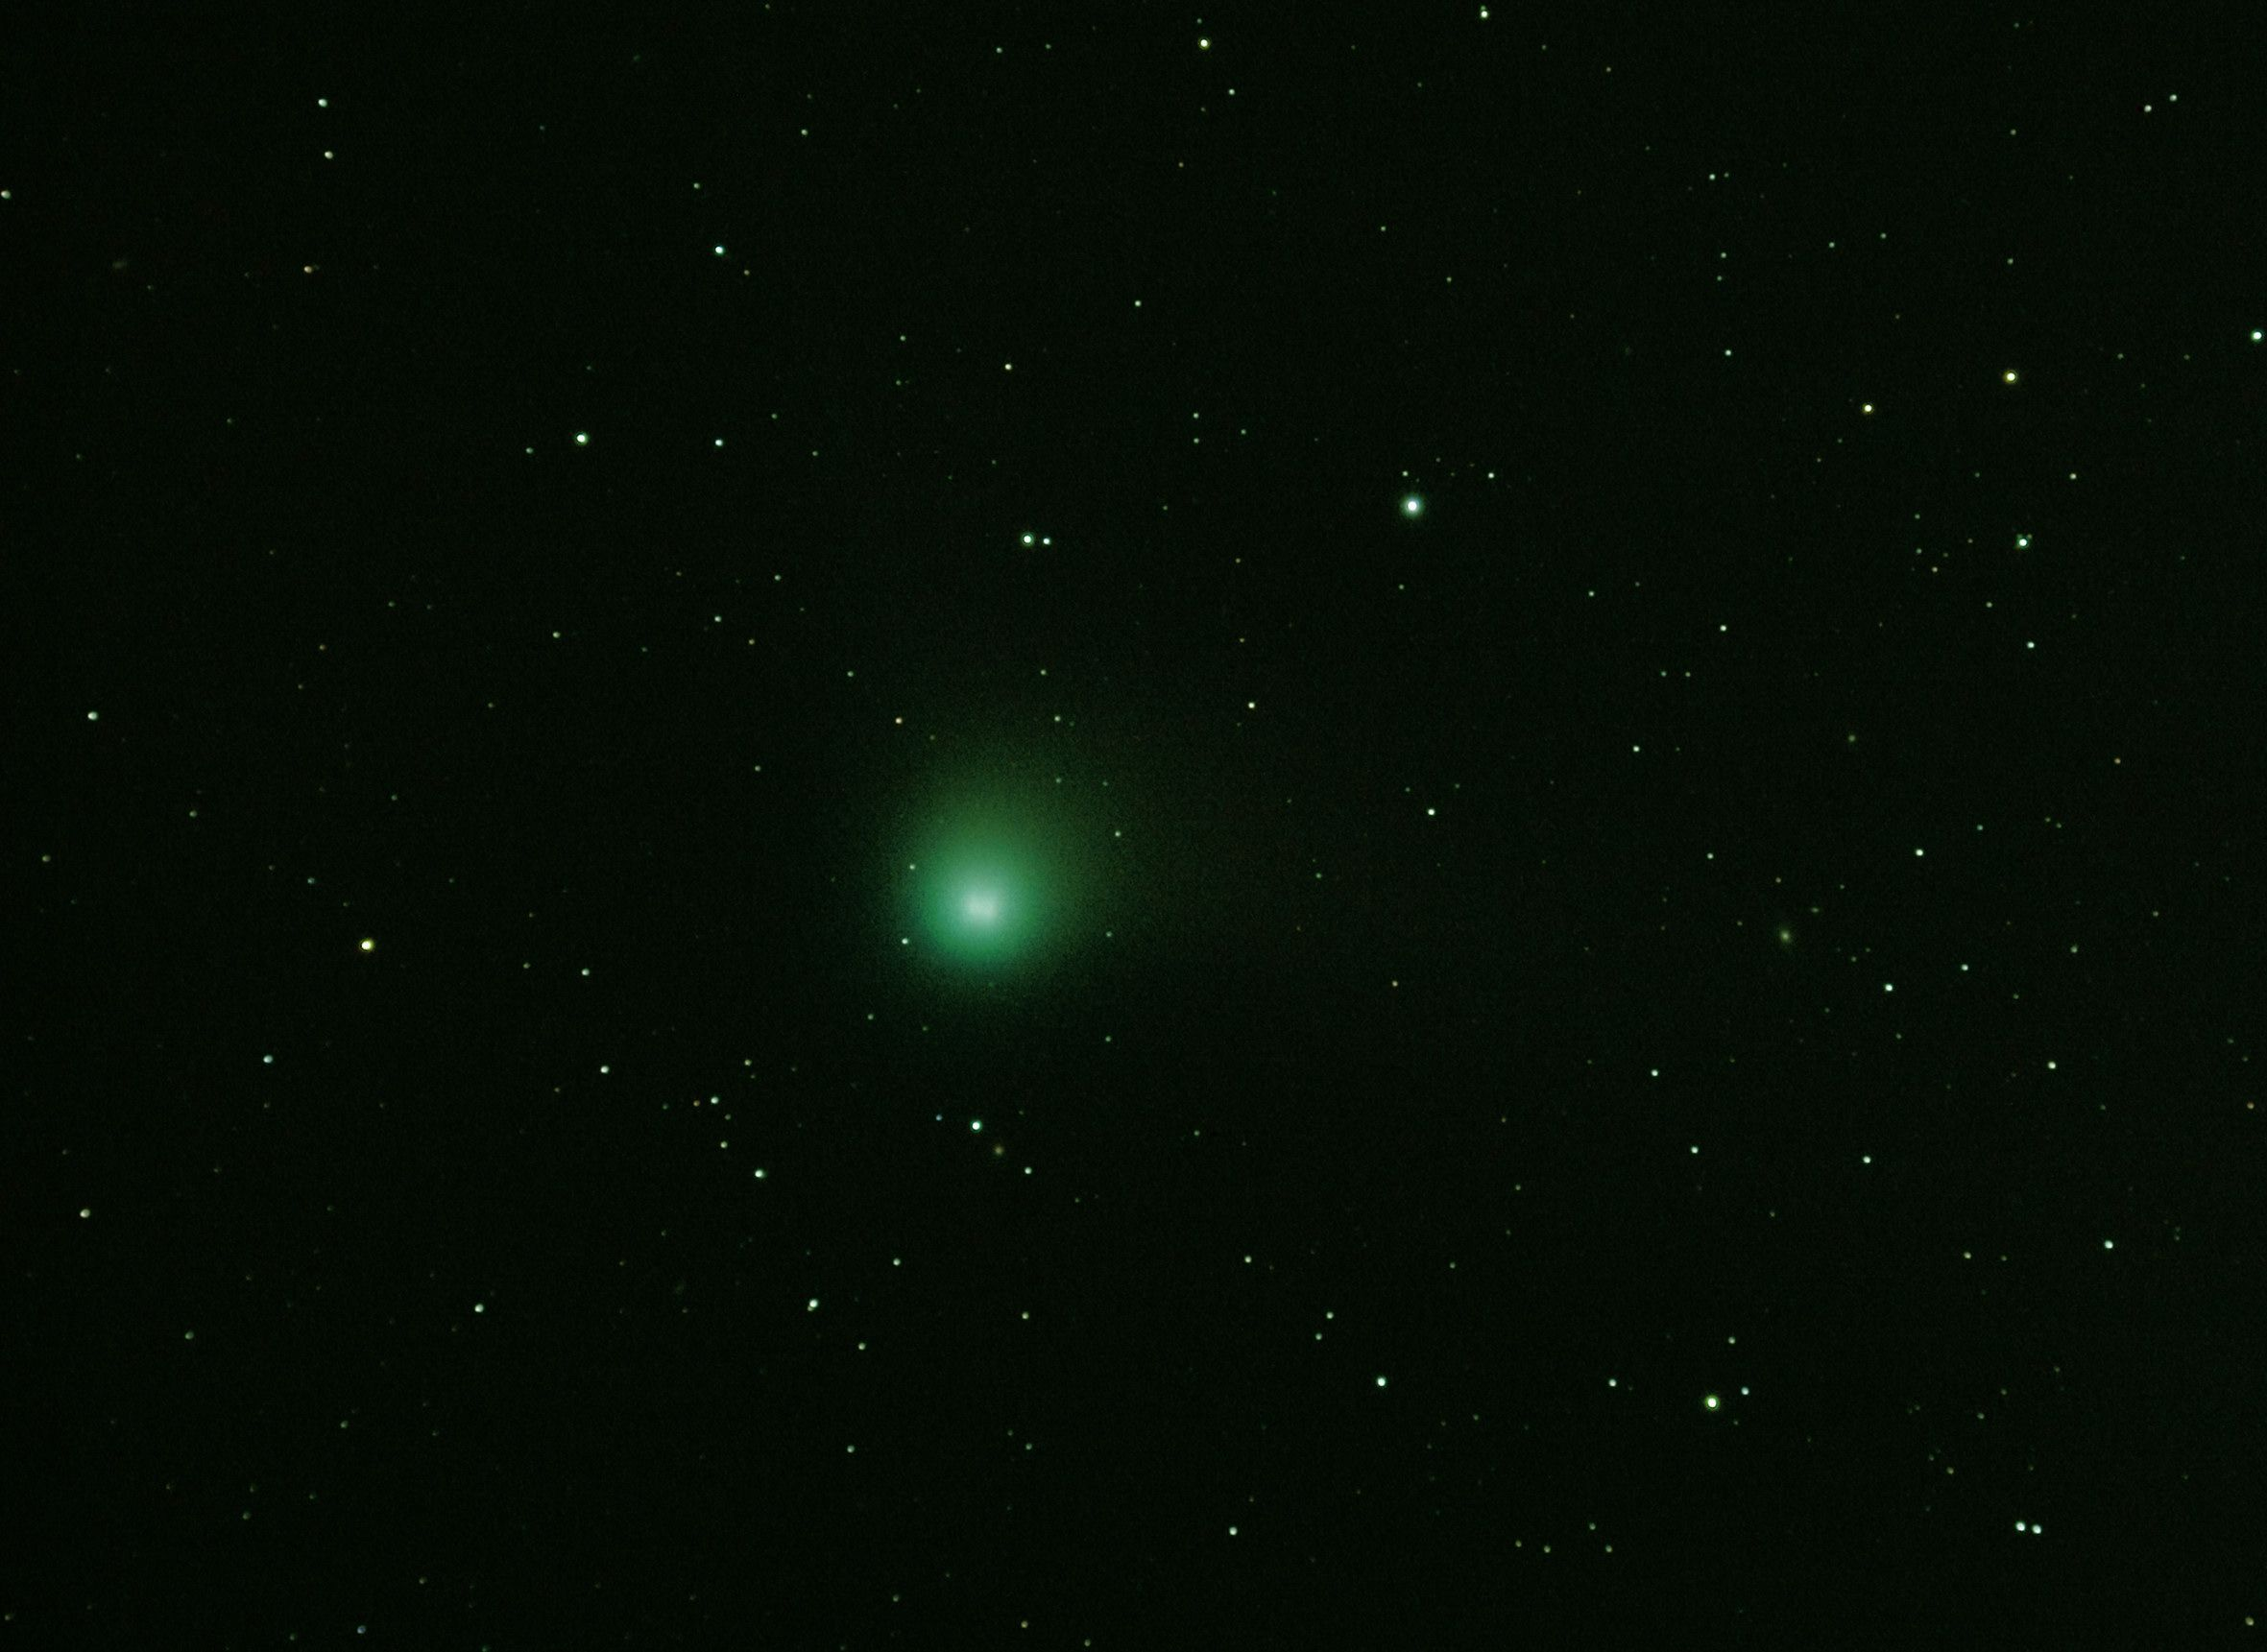 Comet Catalina C 2013 Us10 Astronomy Pictures At Orion